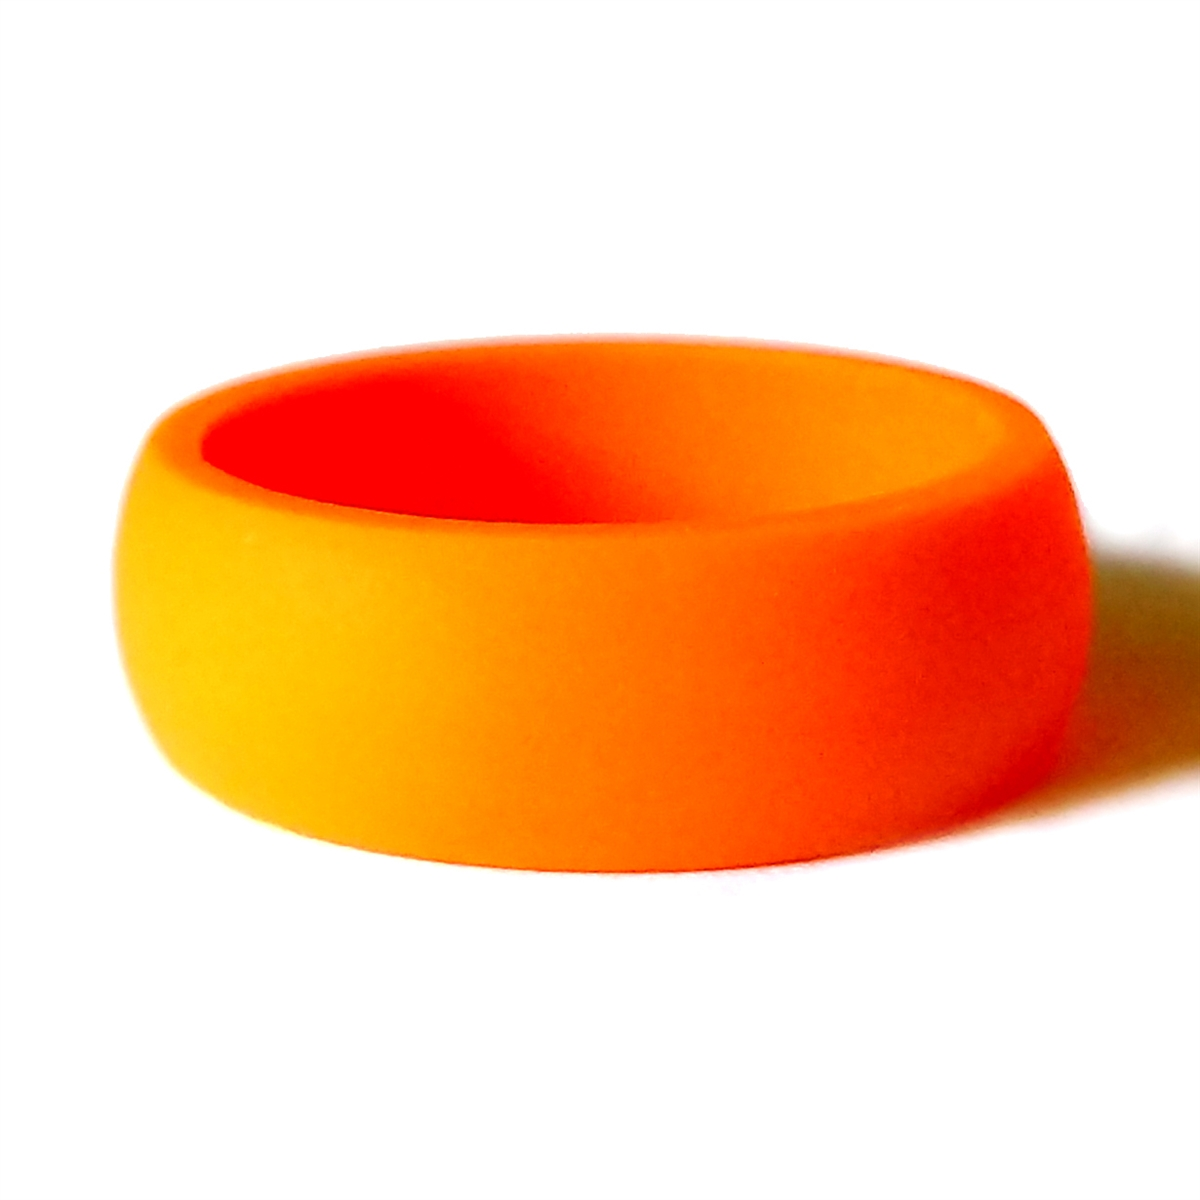 Silicone Wedding Ring.Men S Orange Silicone Ring